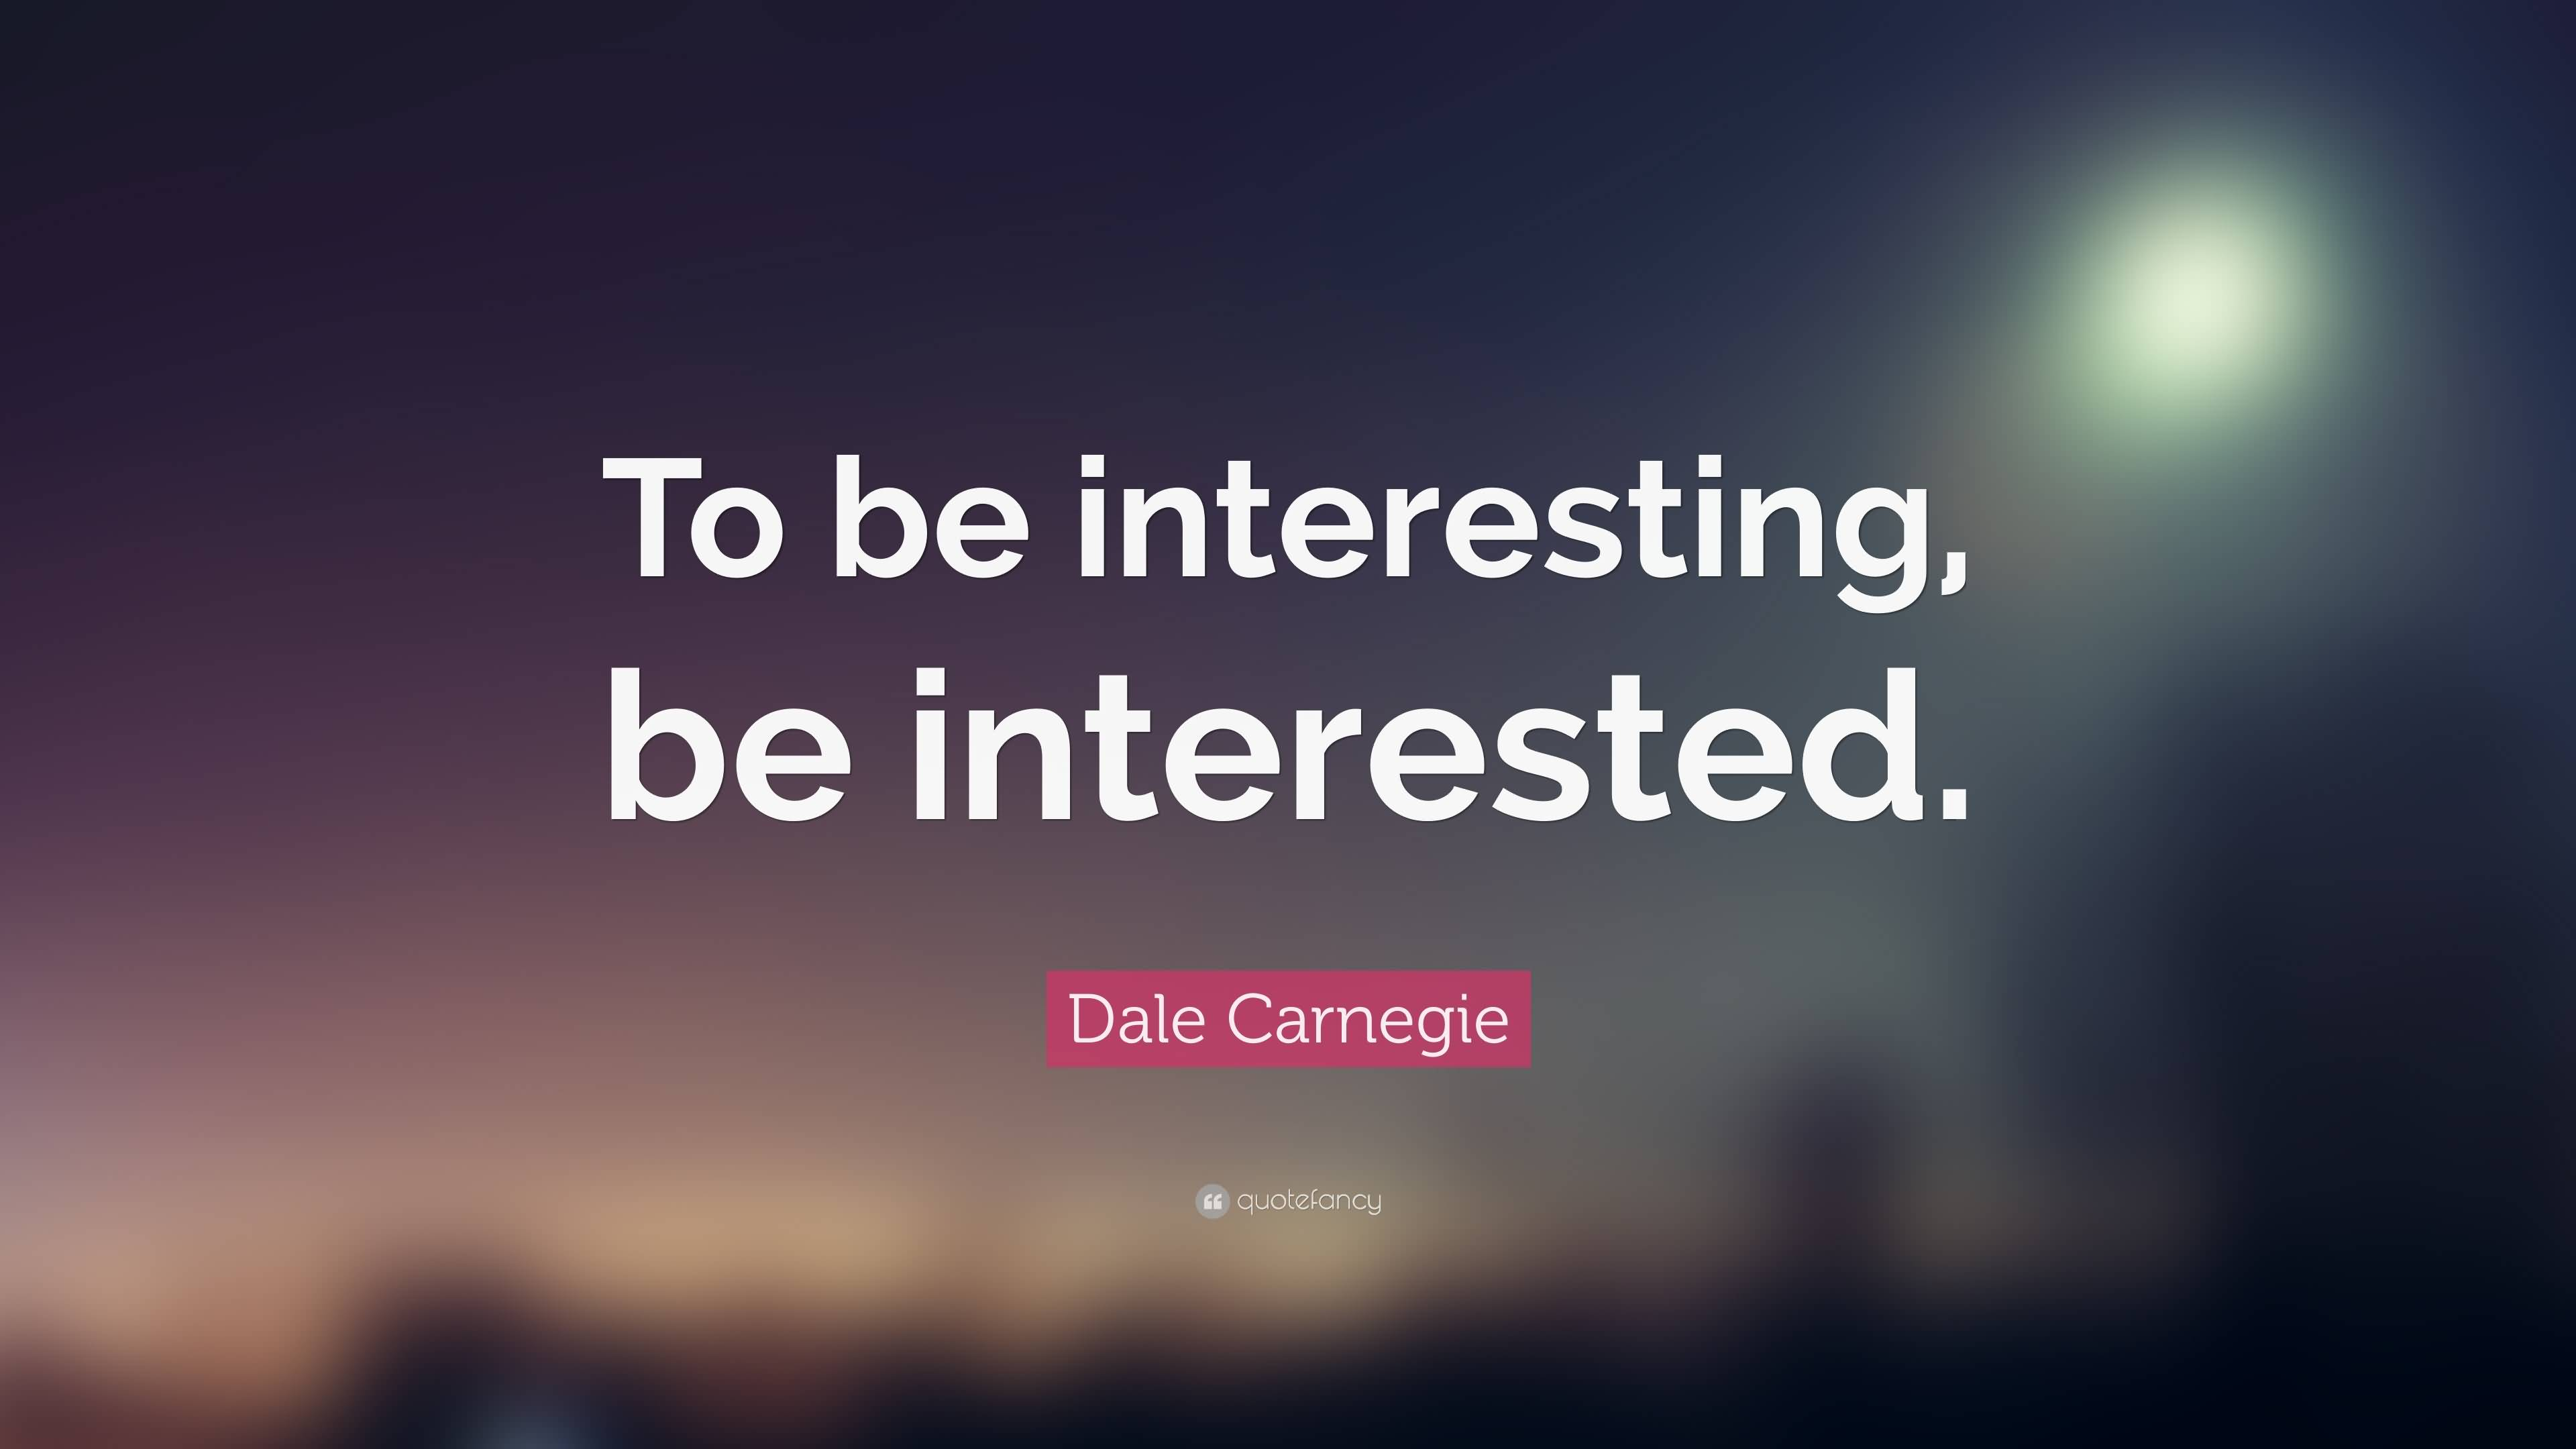 Interesting sayings to be interesting be interested